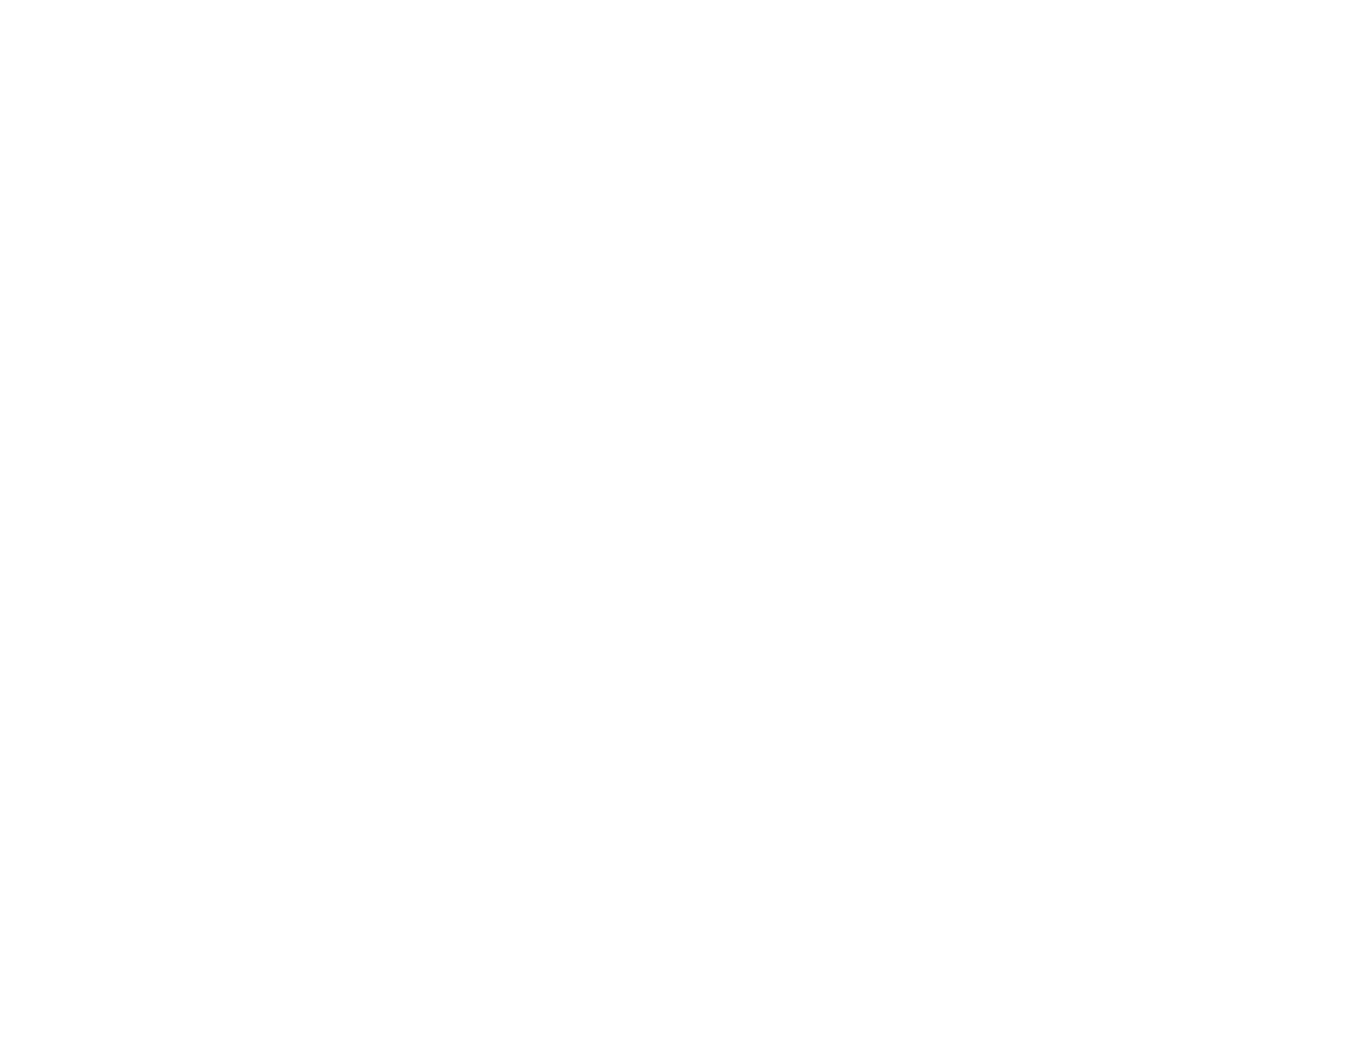 Ample Appliances and Amenities